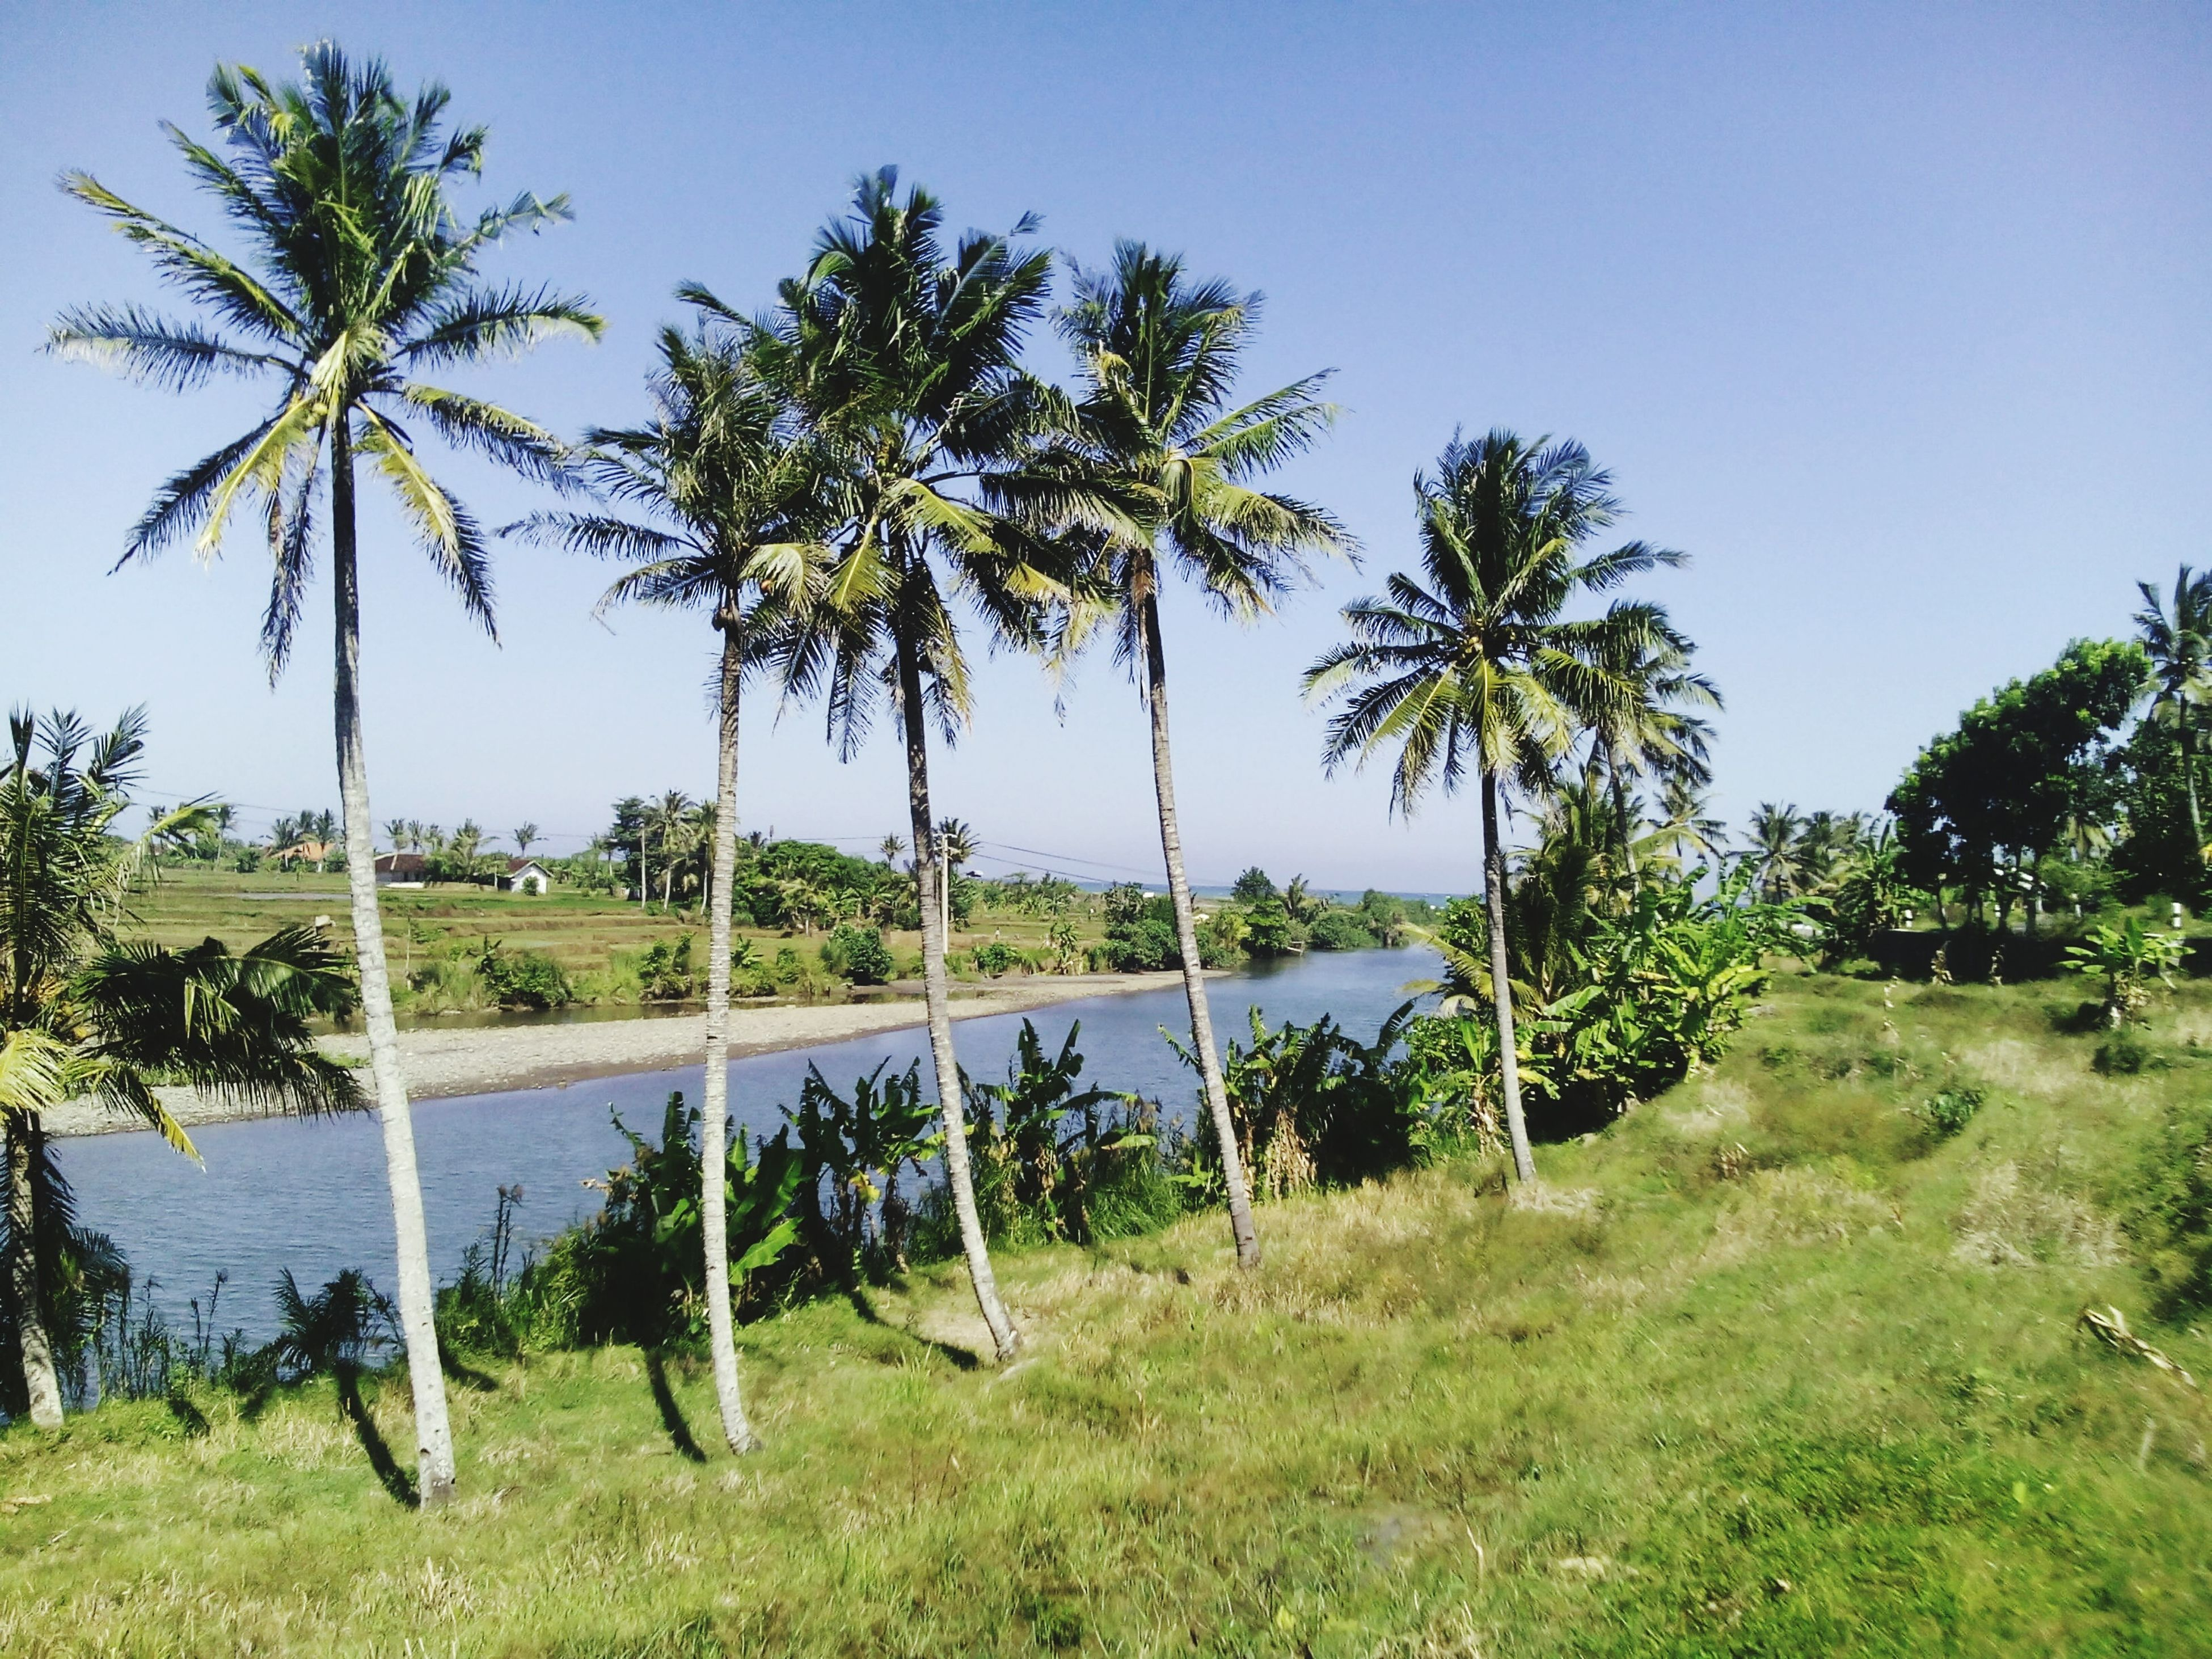 tree, palm tree, water, tranquility, grass, tranquil scene, growth, clear sky, nature, scenics, beauty in nature, green color, sea, sky, tree trunk, plant, idyllic, day, beach, sunlight